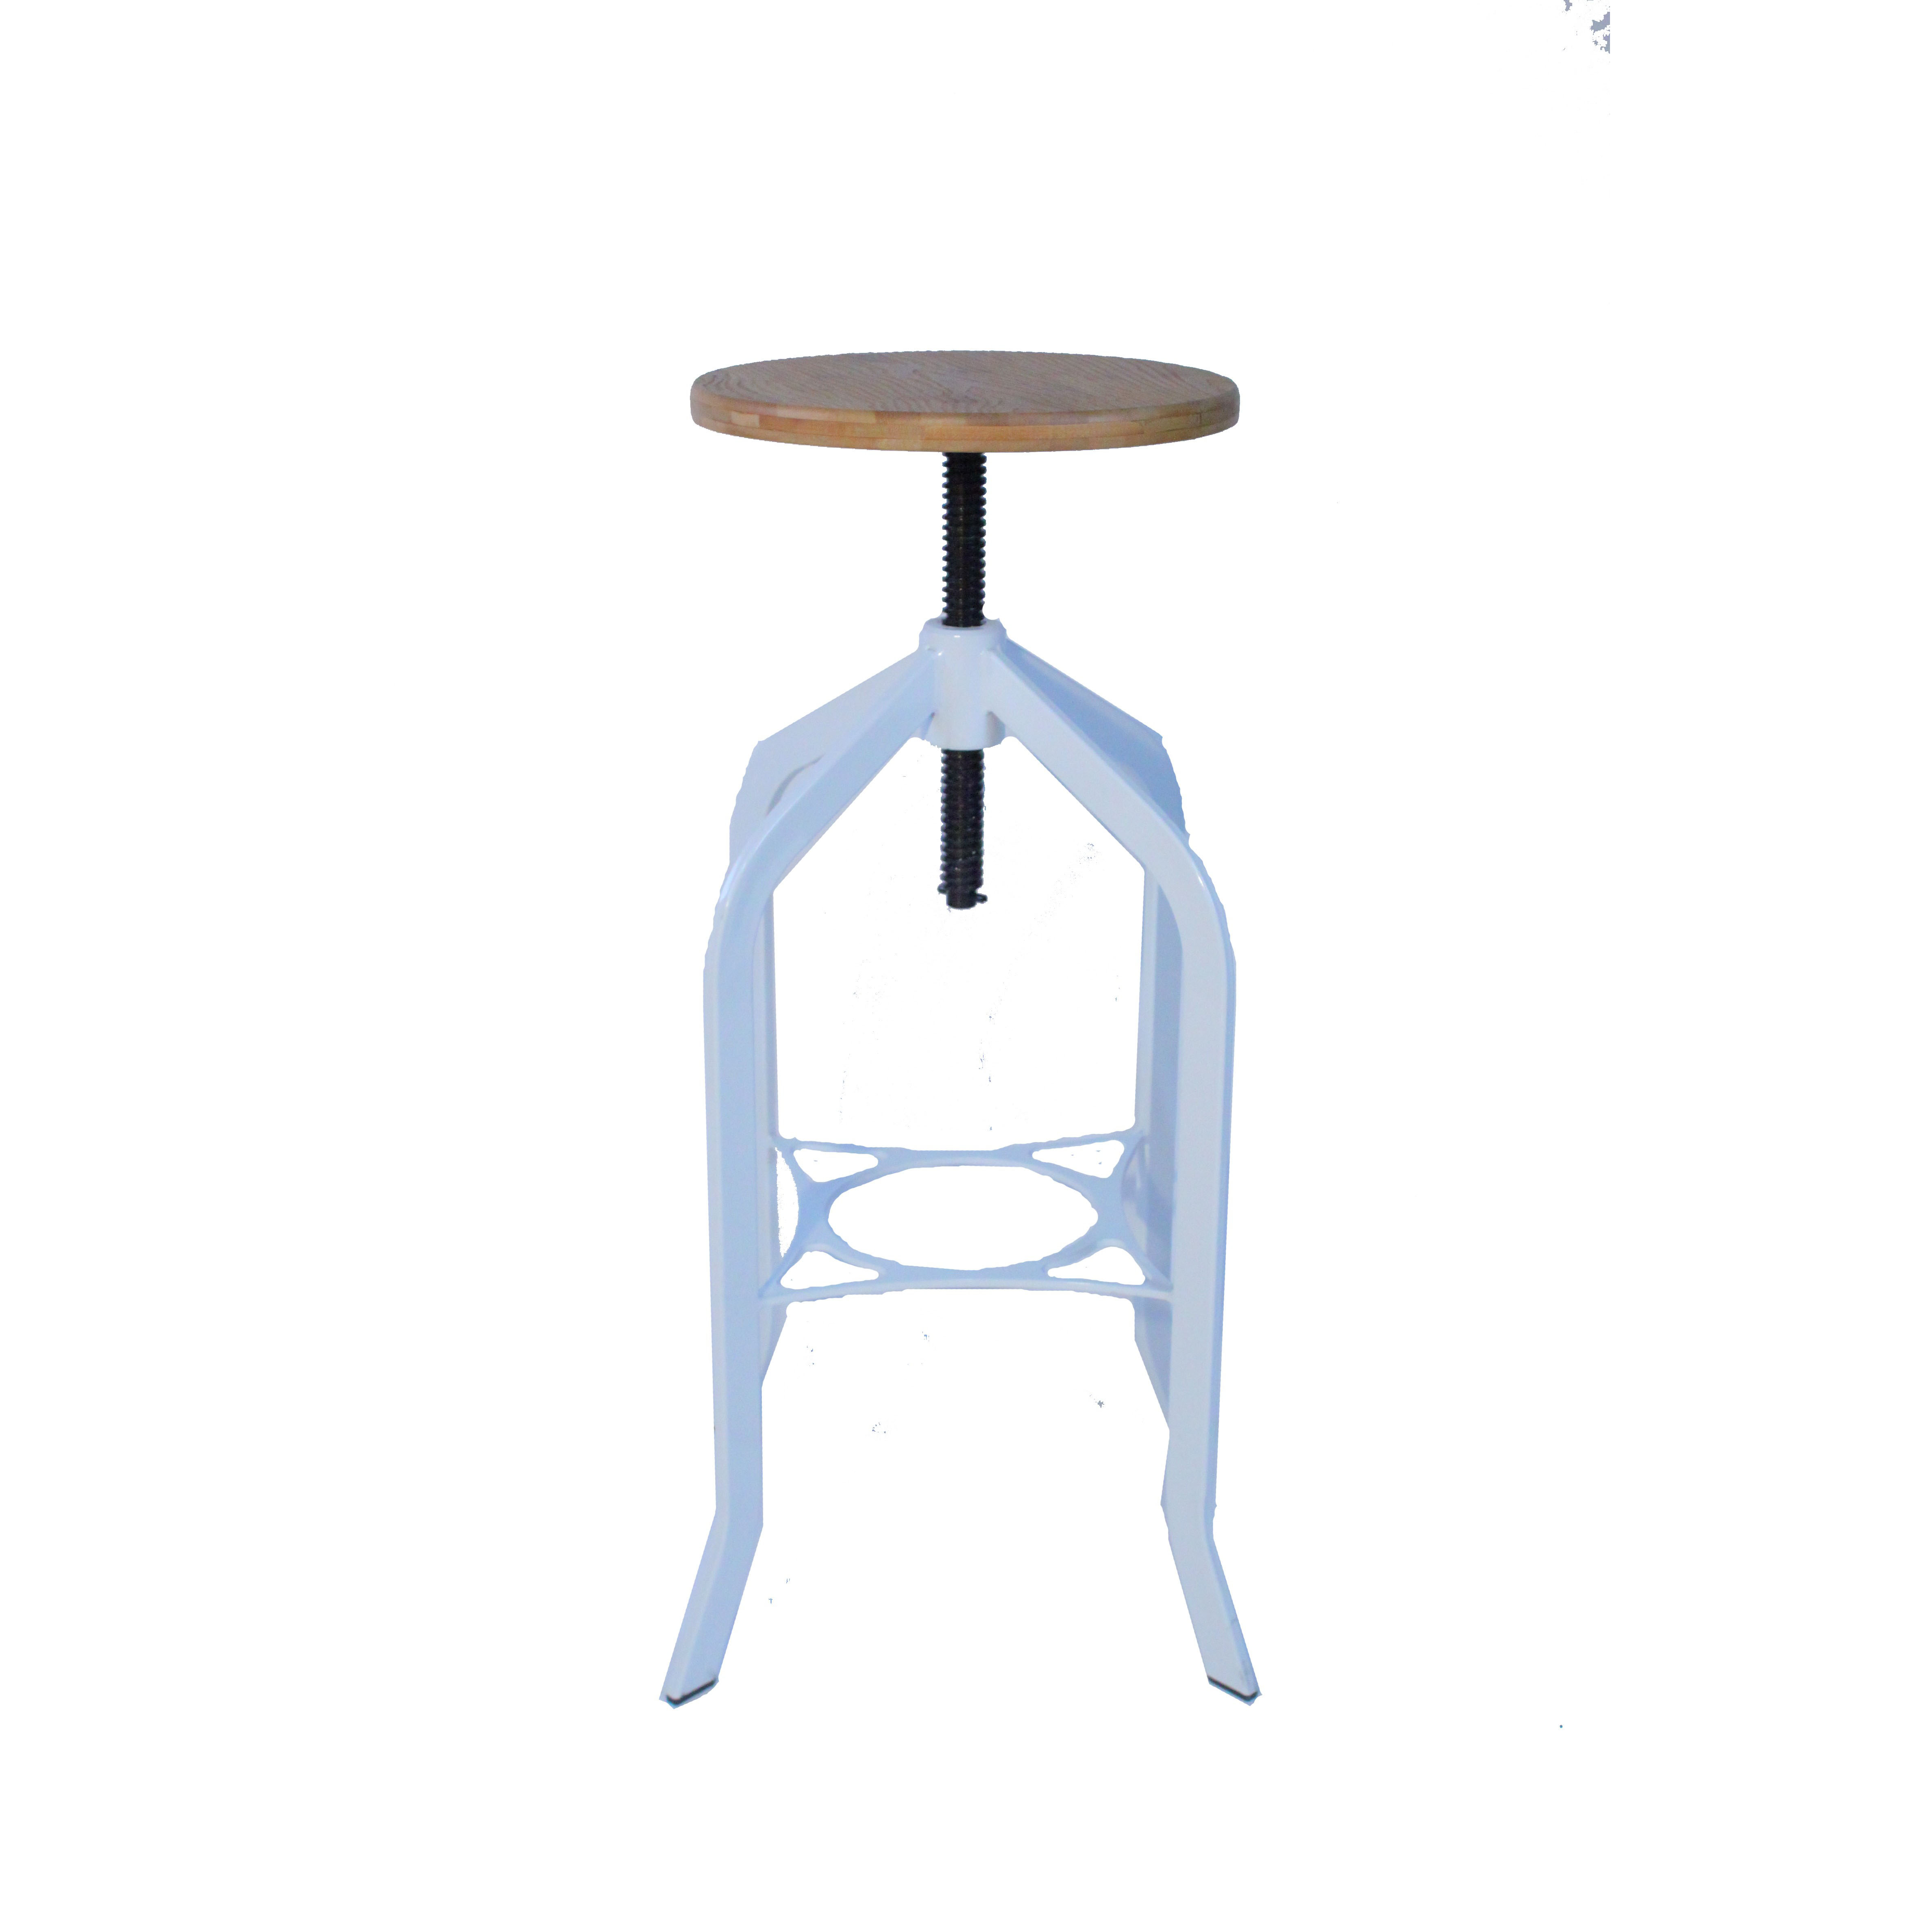 Trento Vintage Bar Stool - White Product Image